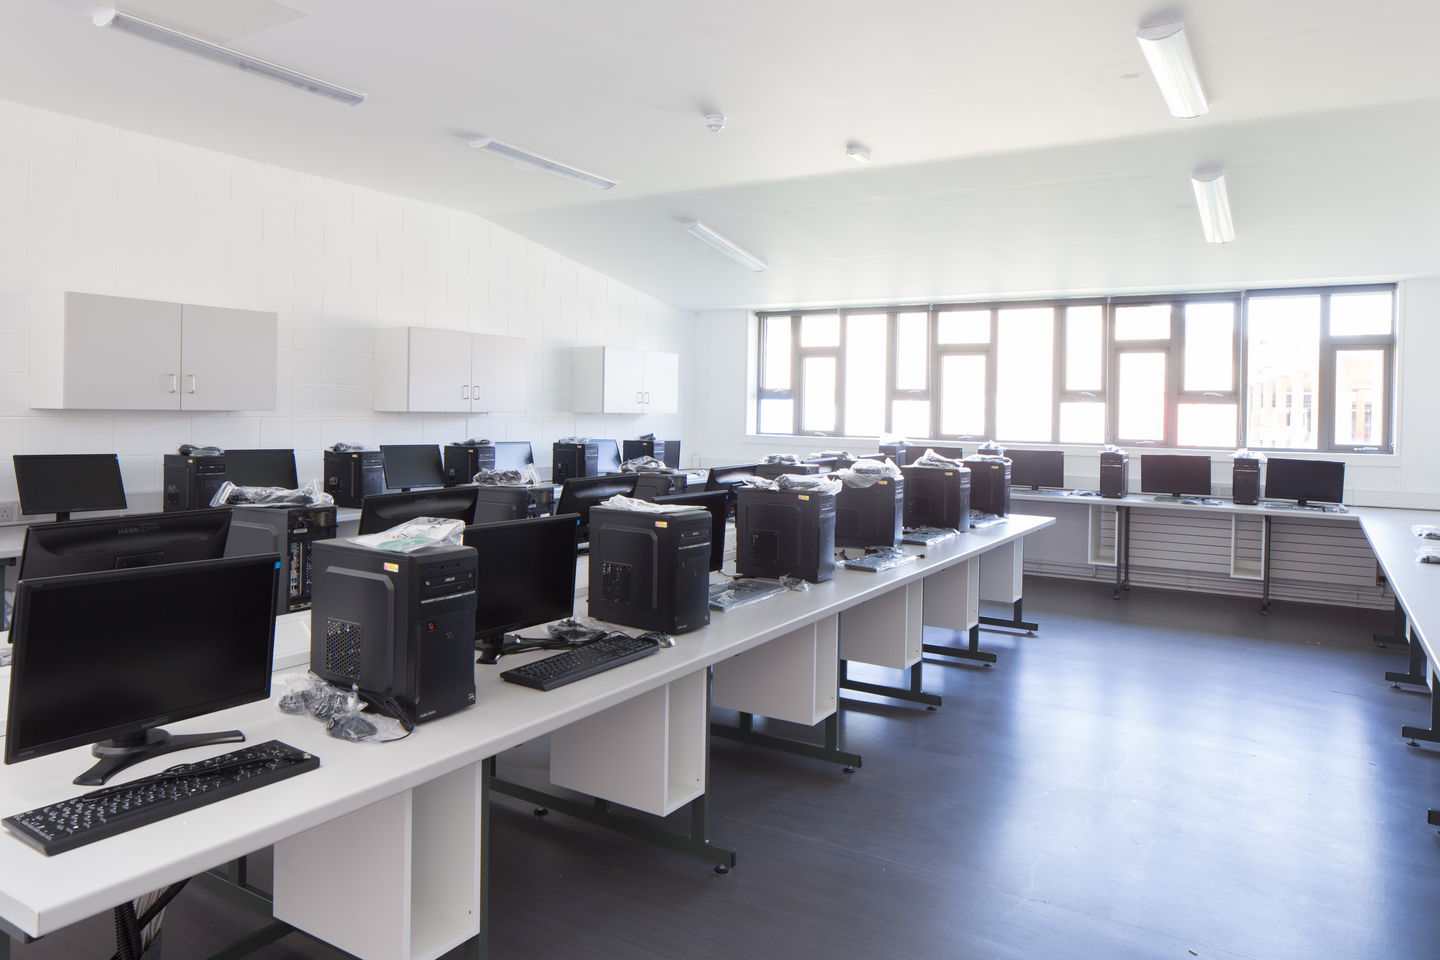 Computer Room at St Anne's